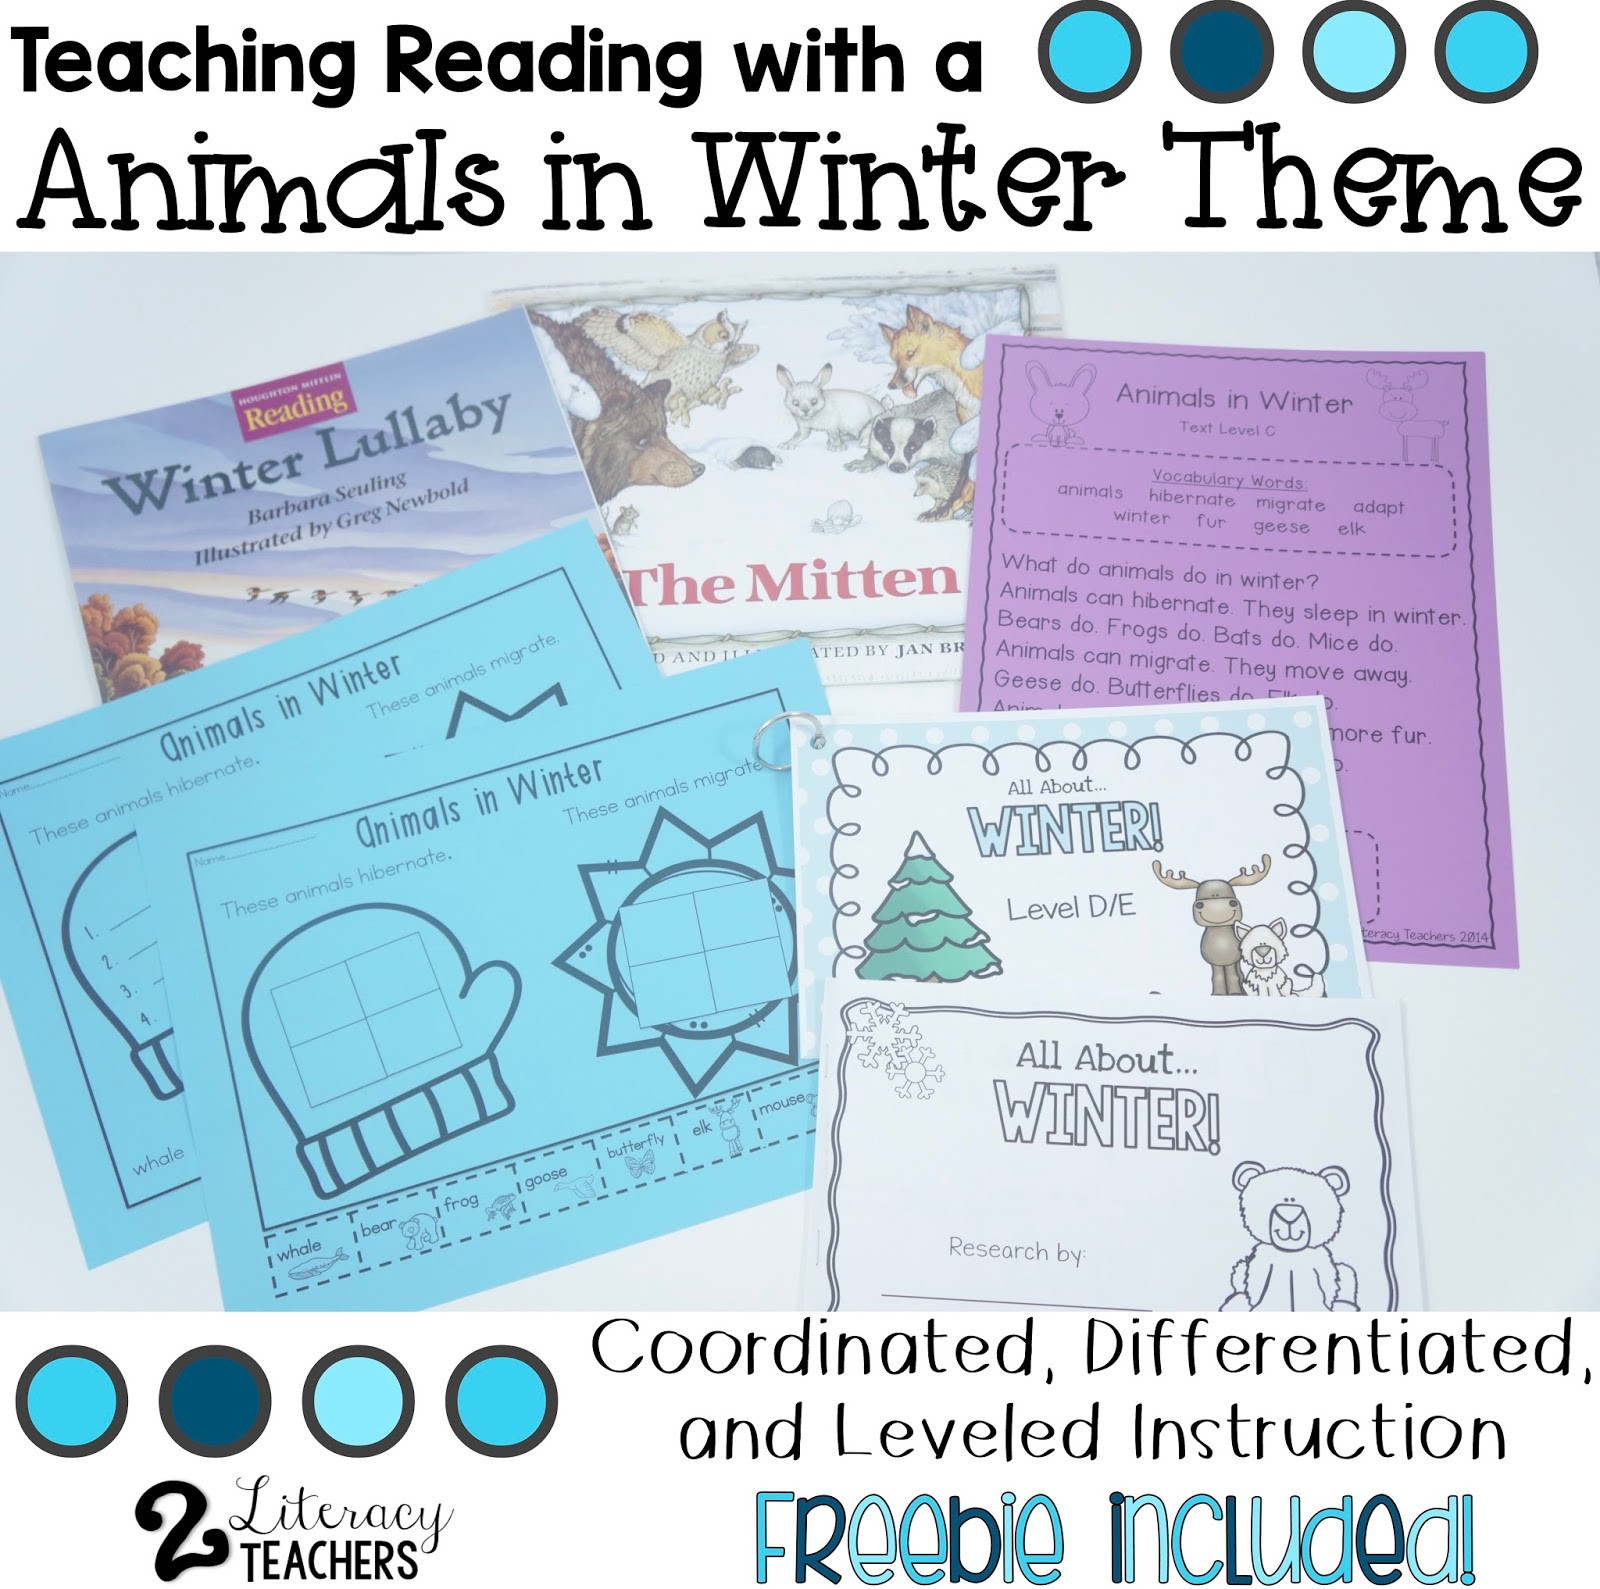 Teaching With an Animals in Winter Theme – Differentiated, Leveled Instruction and a FREEBIE!